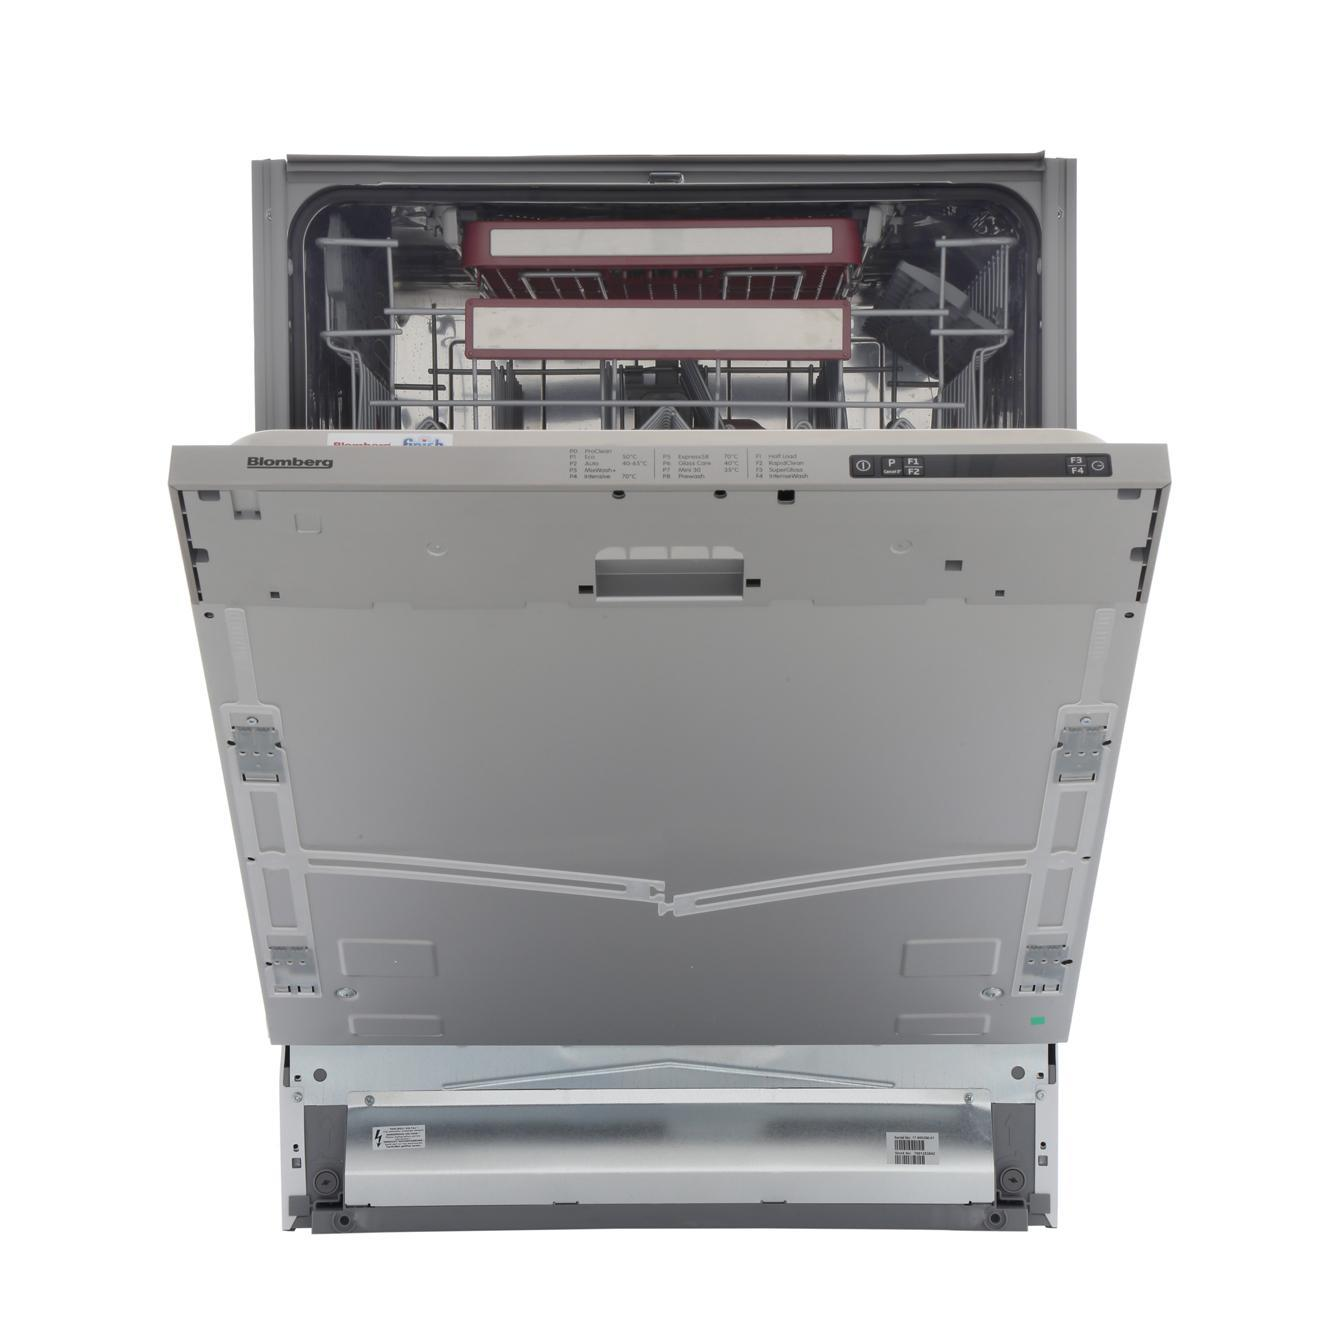 Buy Blomberg LDVN2284 Built In Fully Integrated Dishwasher